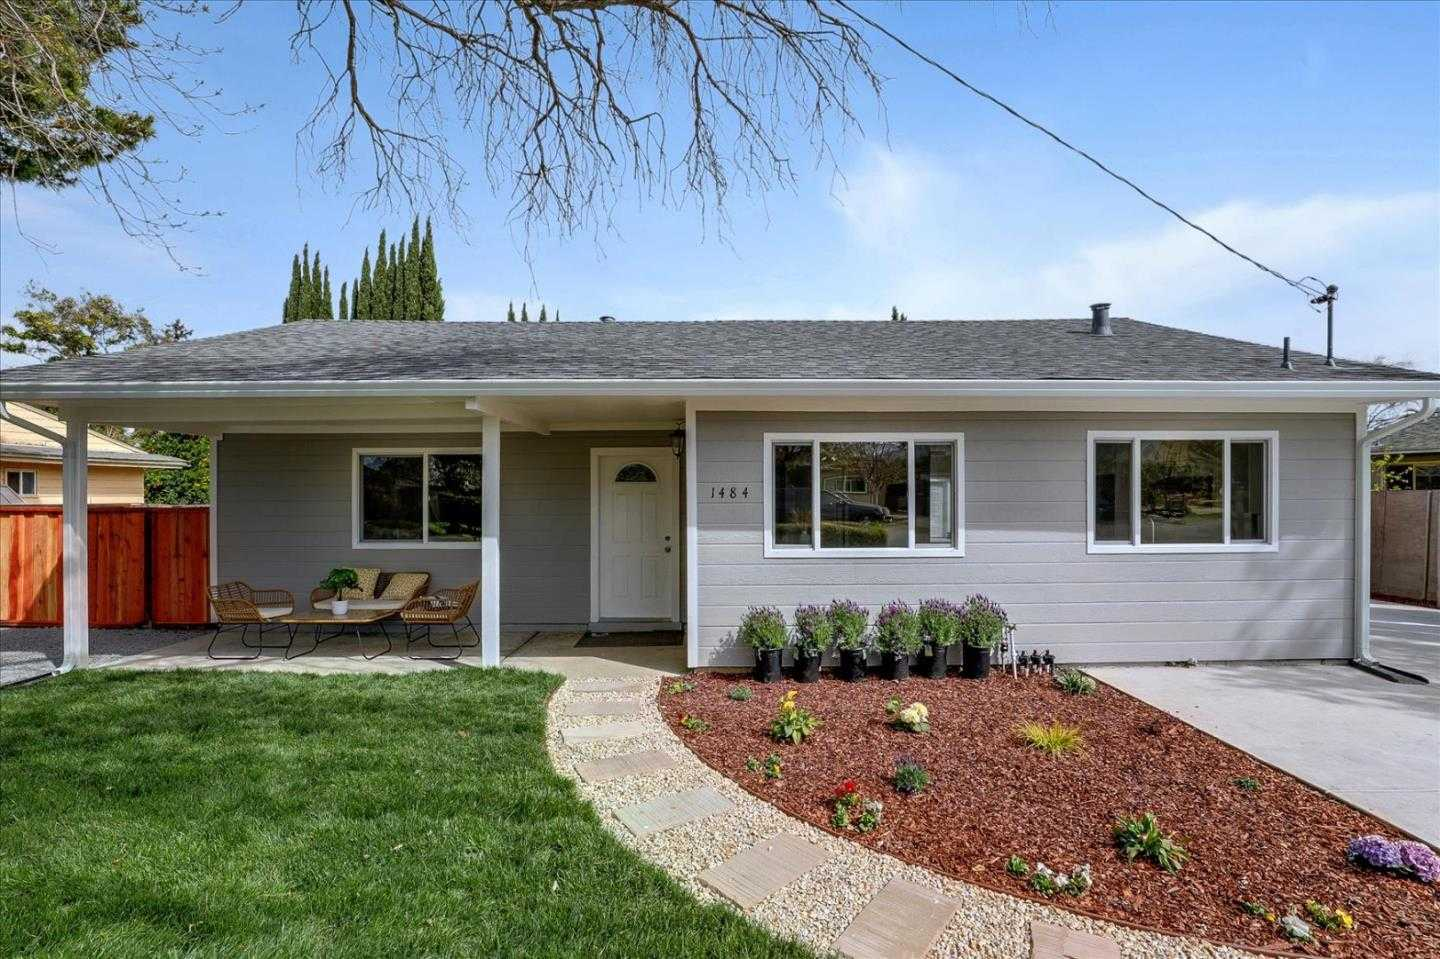 $1,920,000 - 3Br/2Ba -  for Sale in Sunnyvale